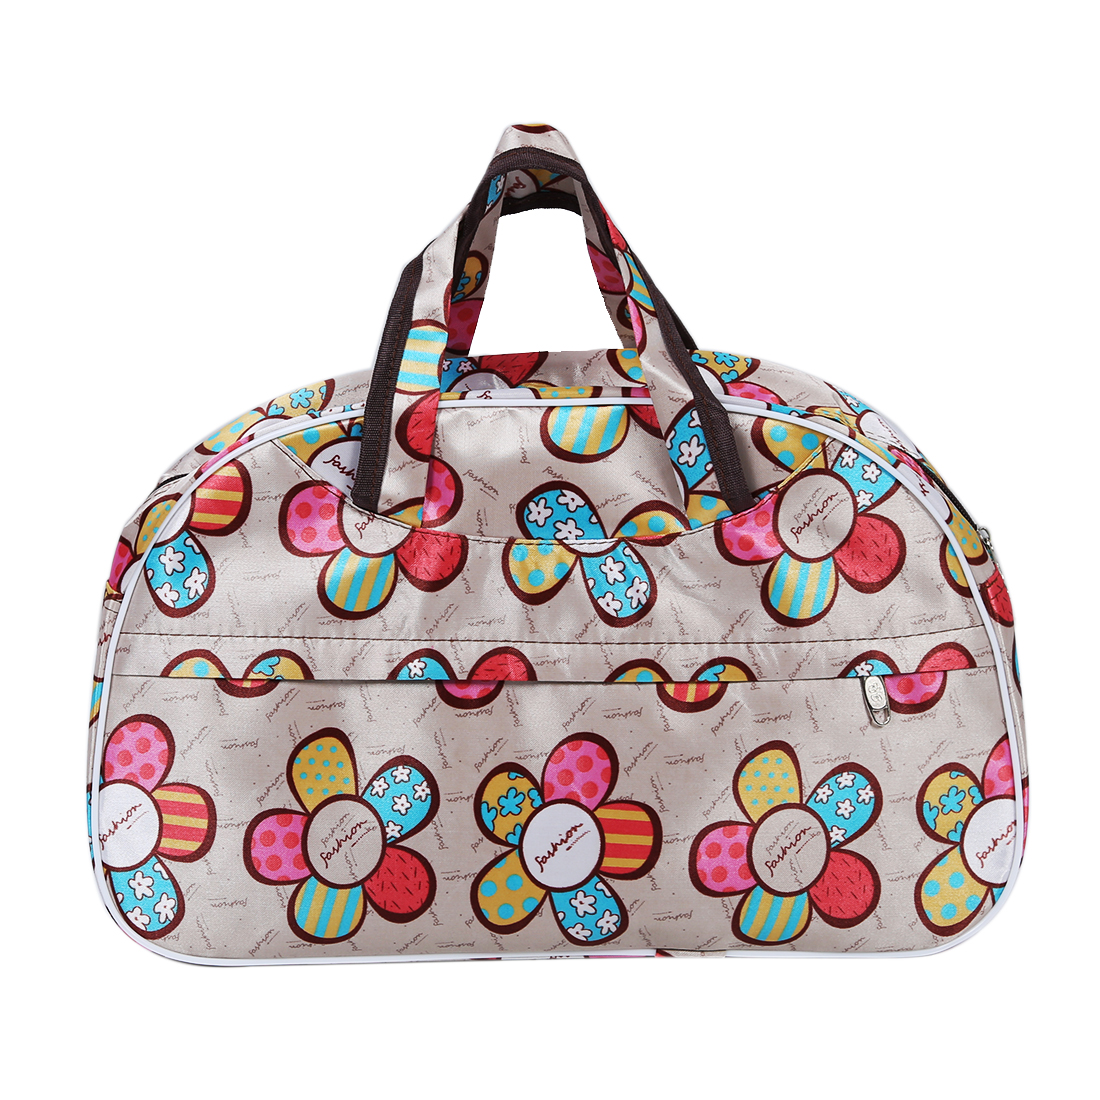 Women Bag Luggage-Bags Canvas Hand Large Waterproof Oxford HEBA Letters Chic-Fashion